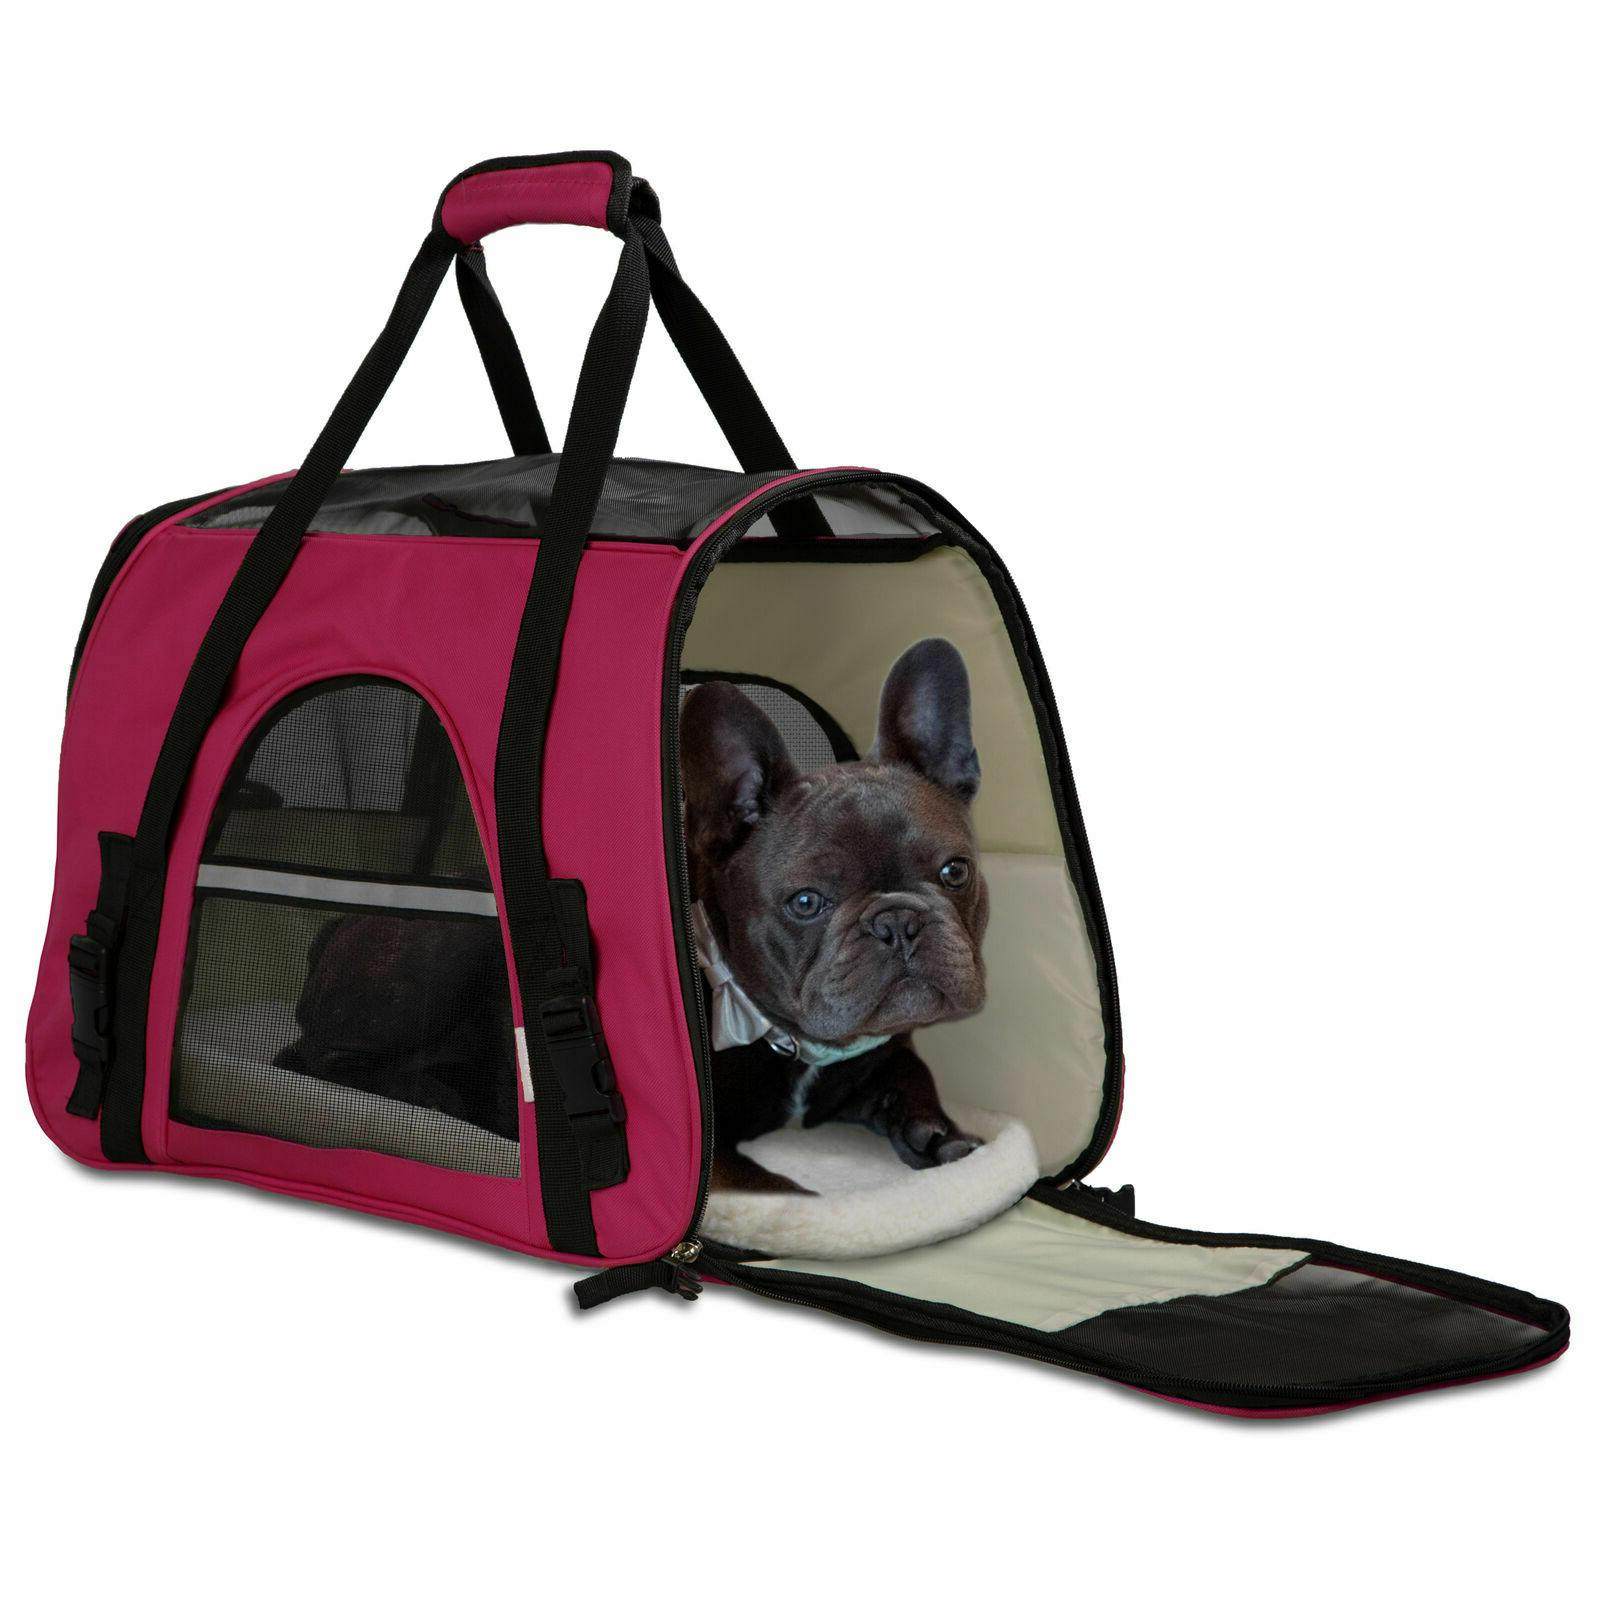 Dog Cat Sided Airline